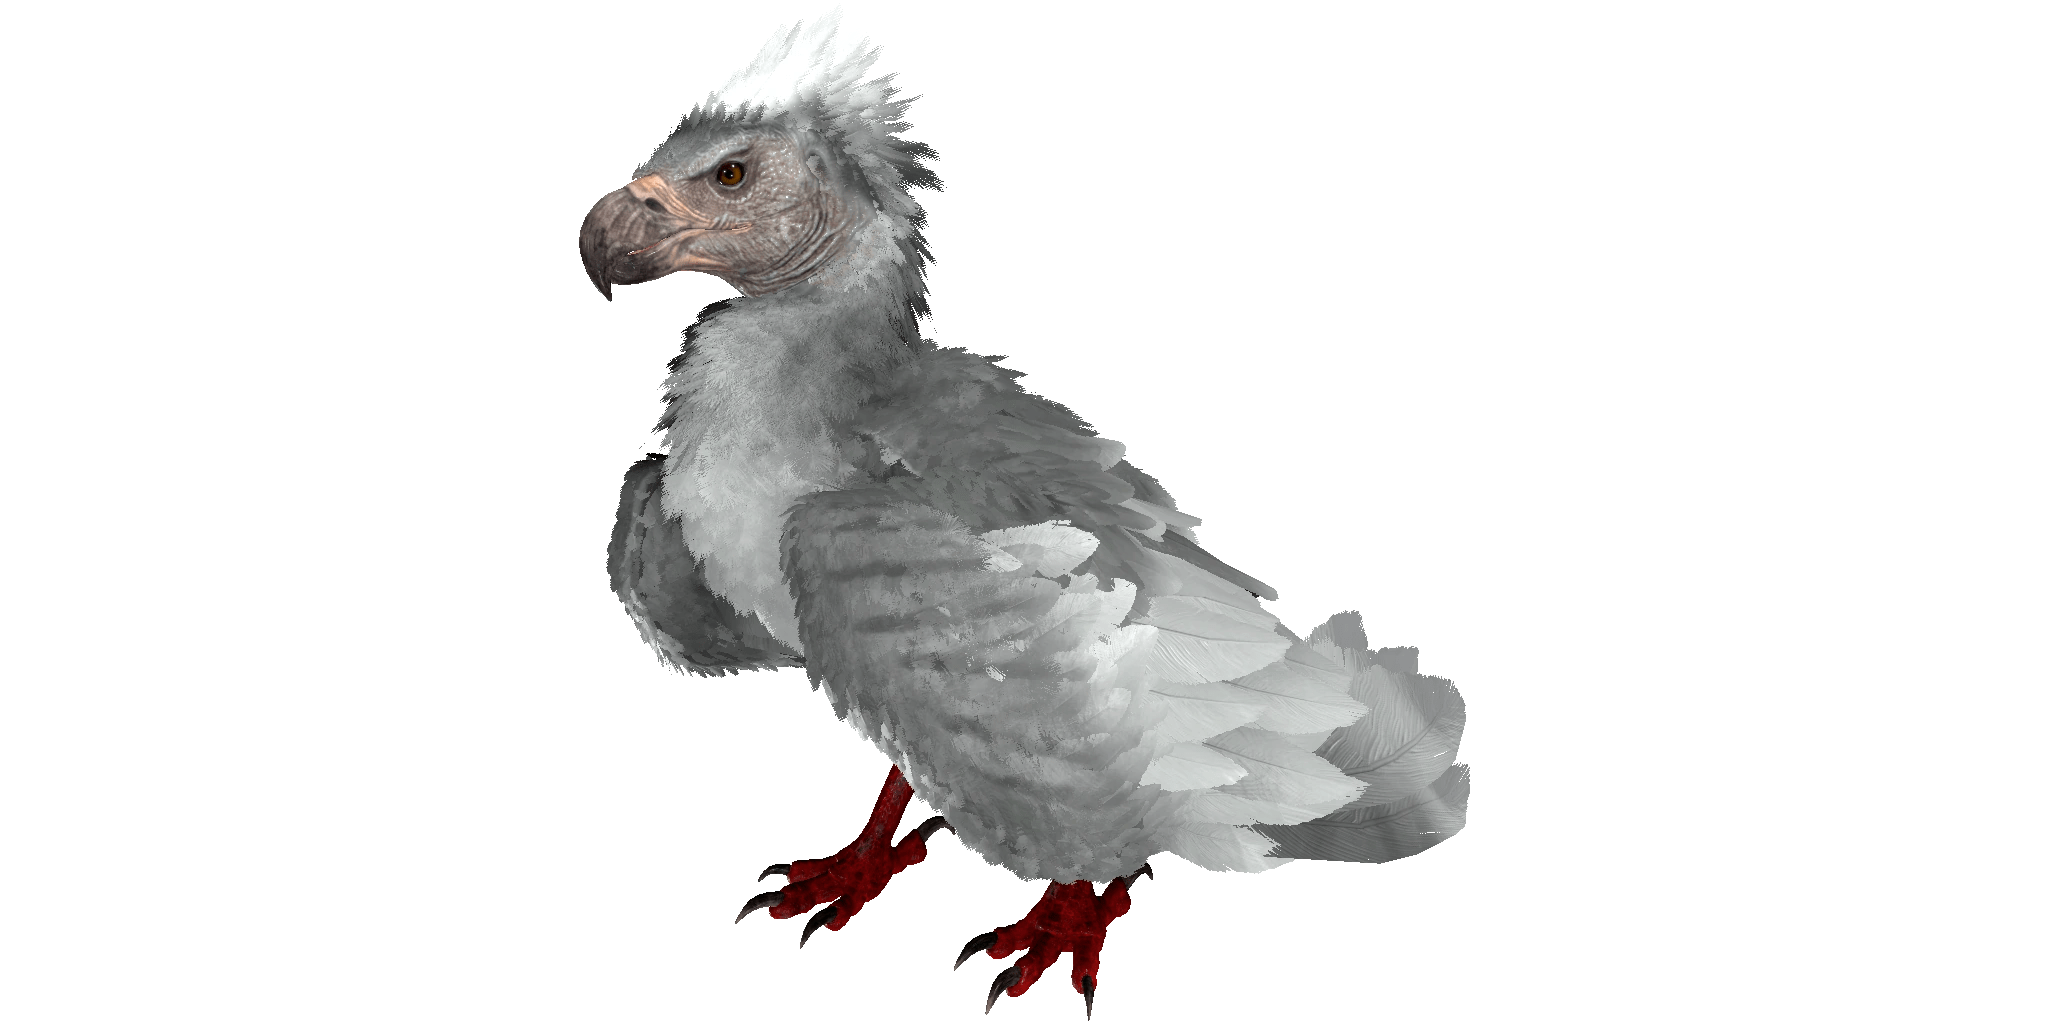 Argentavis Official ARK Survival Evolved Wiki